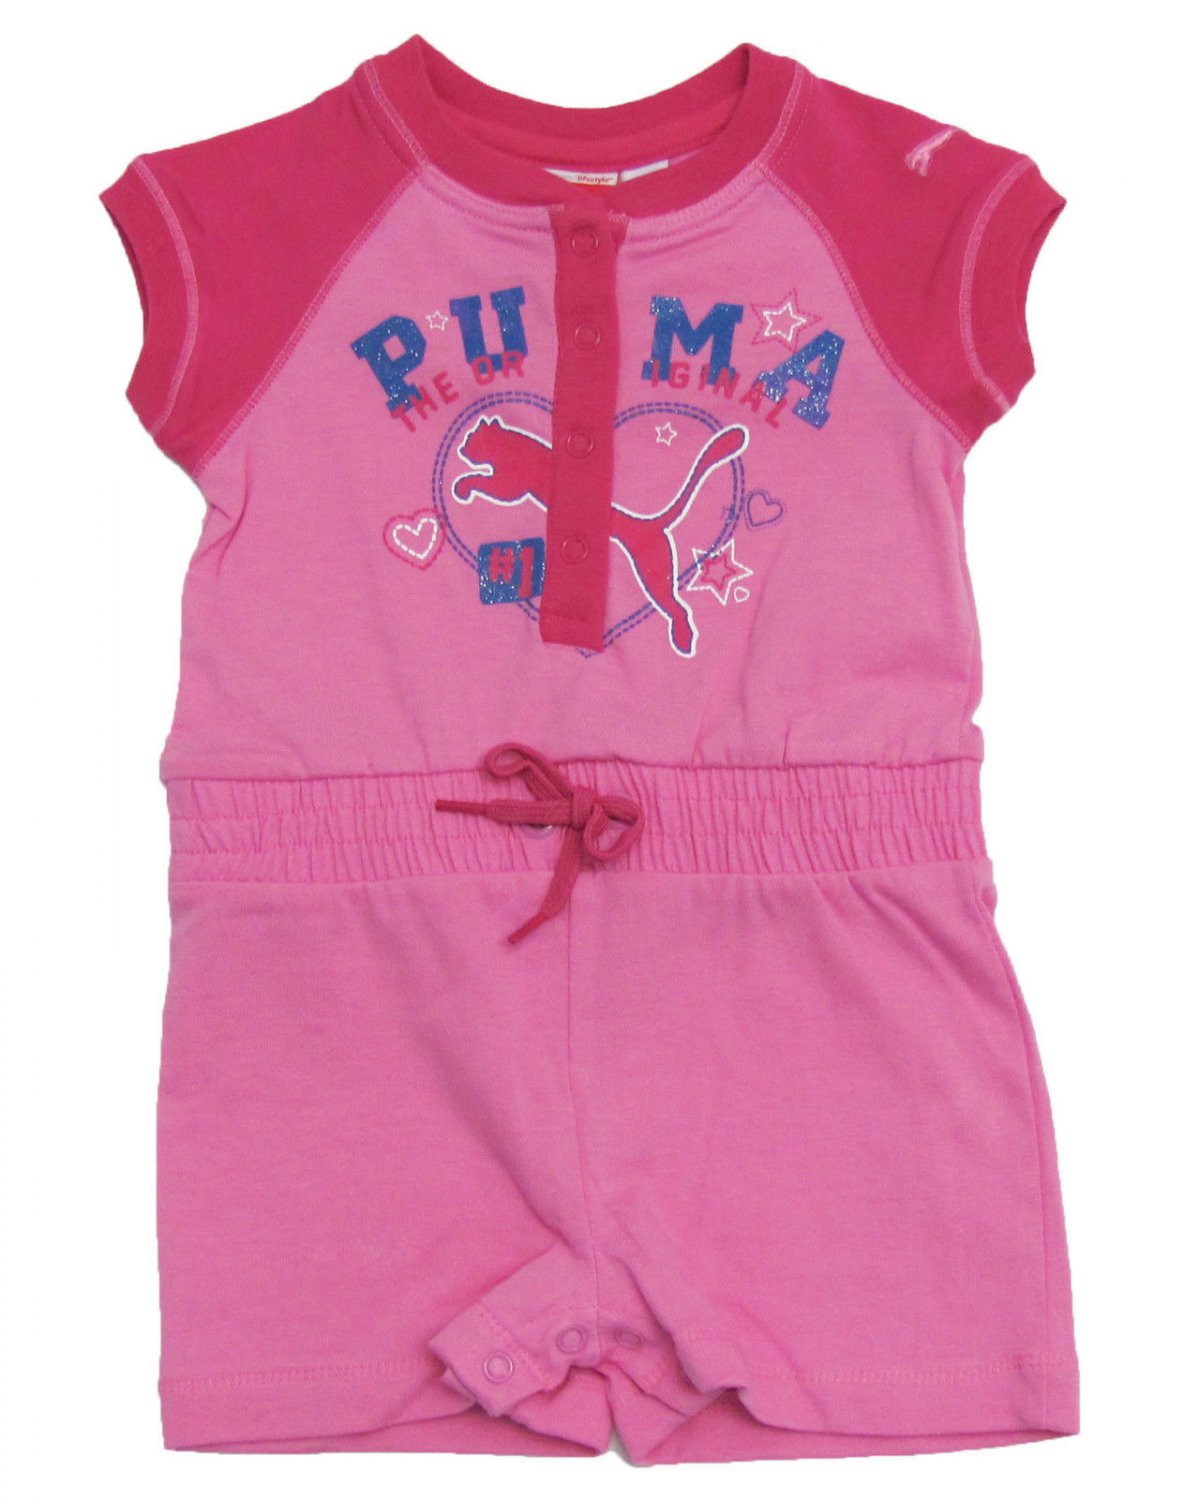 Puma Baby Girls 12 Months Pink Romper Suit One-Piece Shorts New Infant Girl's Summer